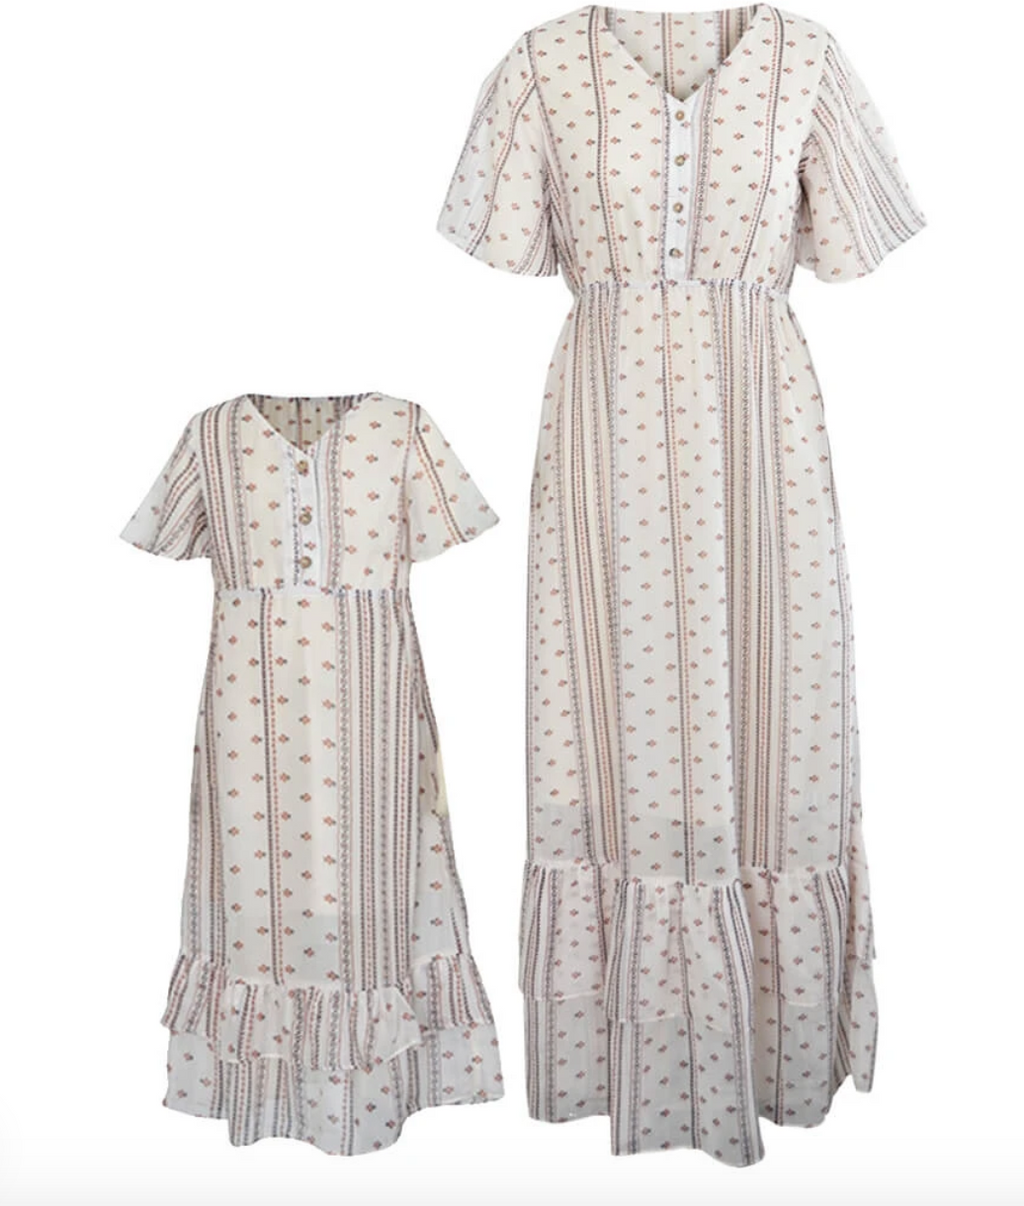 AUBREY MOMMY & ME BOHO BUTTON FRONT RUFFLE DRESS - CREAM FLORAL STRIPE